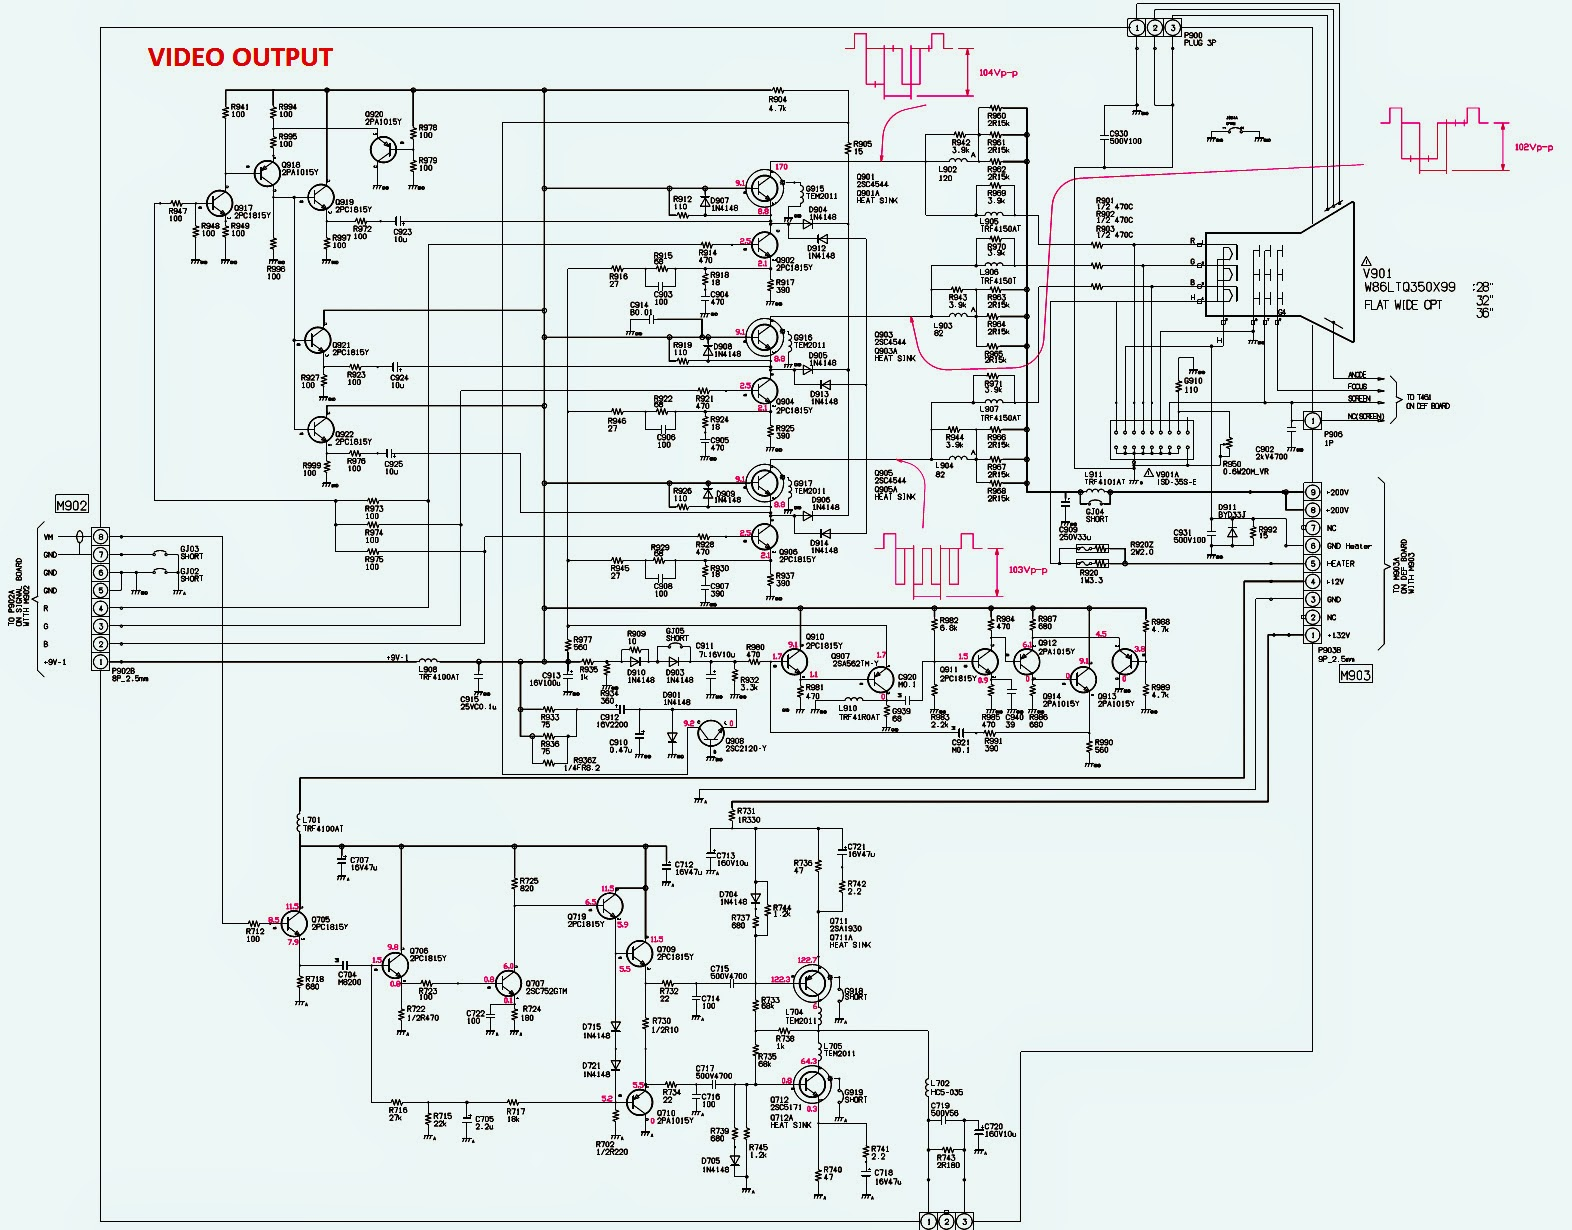 Toshiba 32zd36p Toshiba 36zd36p Smps Horizontal And Vertical Video Output Schematic